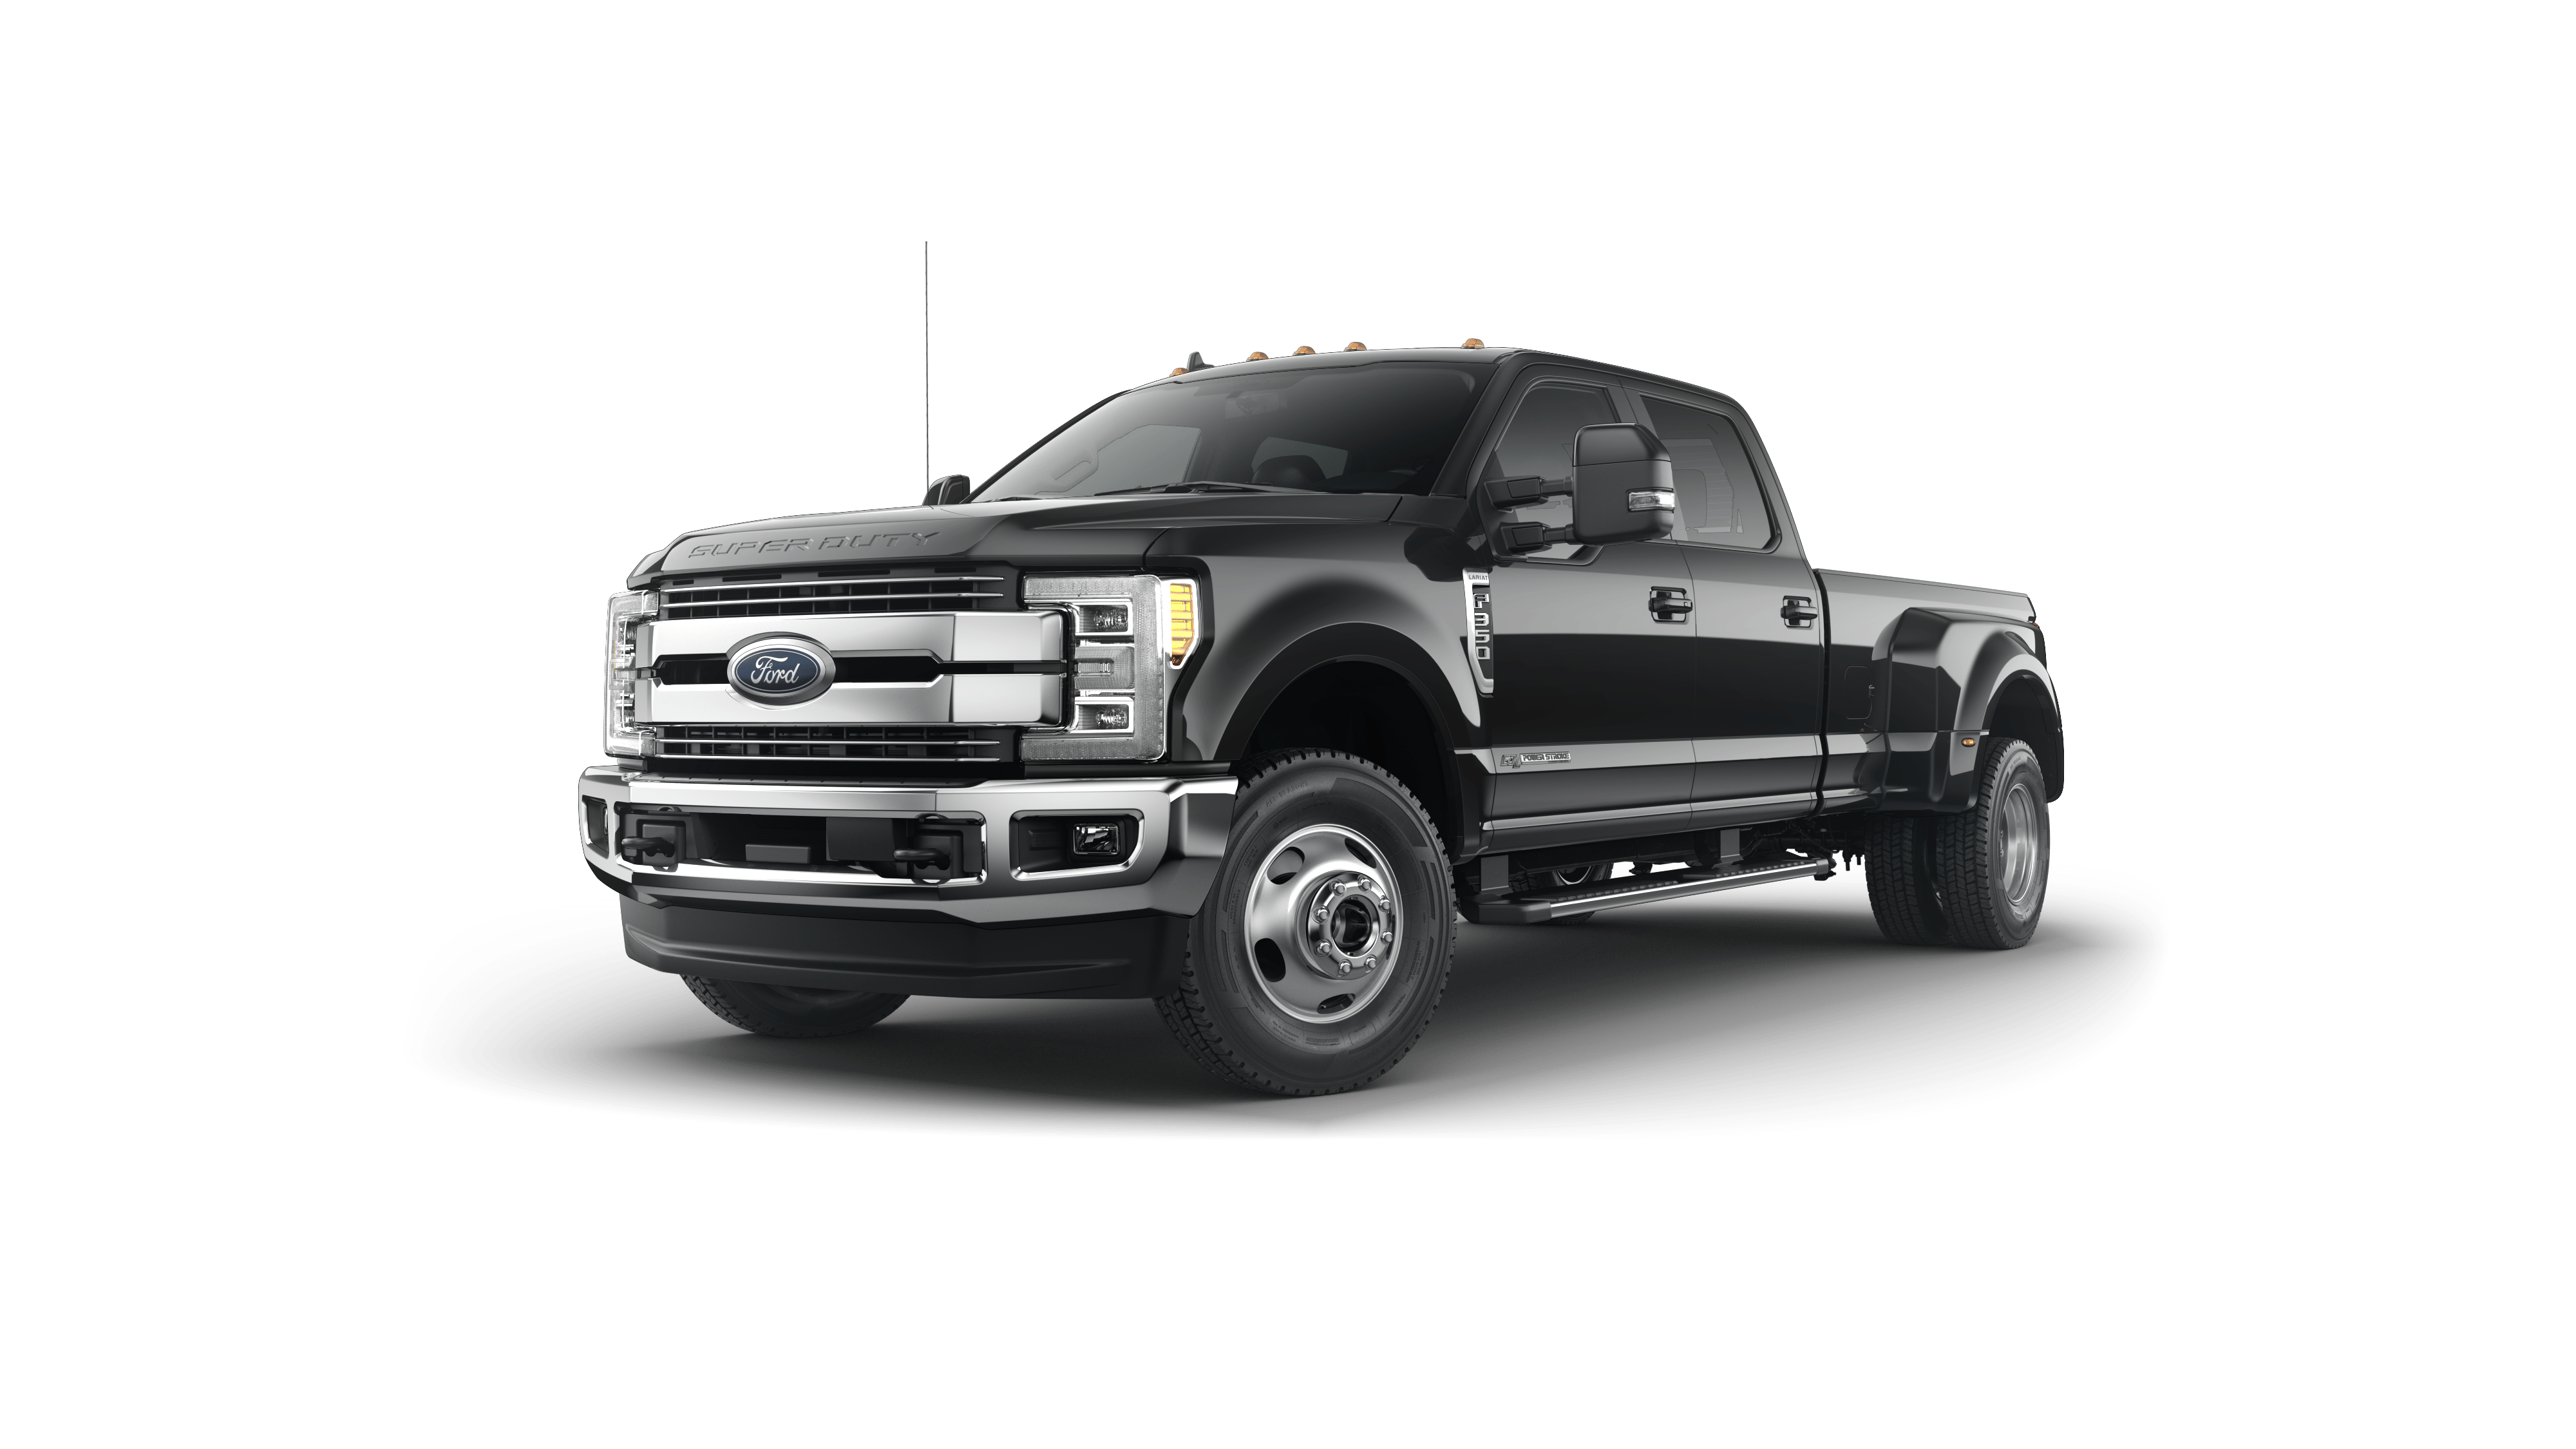 2019 Ford Super Duty F-350 DRW Vehicle Photo in Souderton, PA 18964-1038